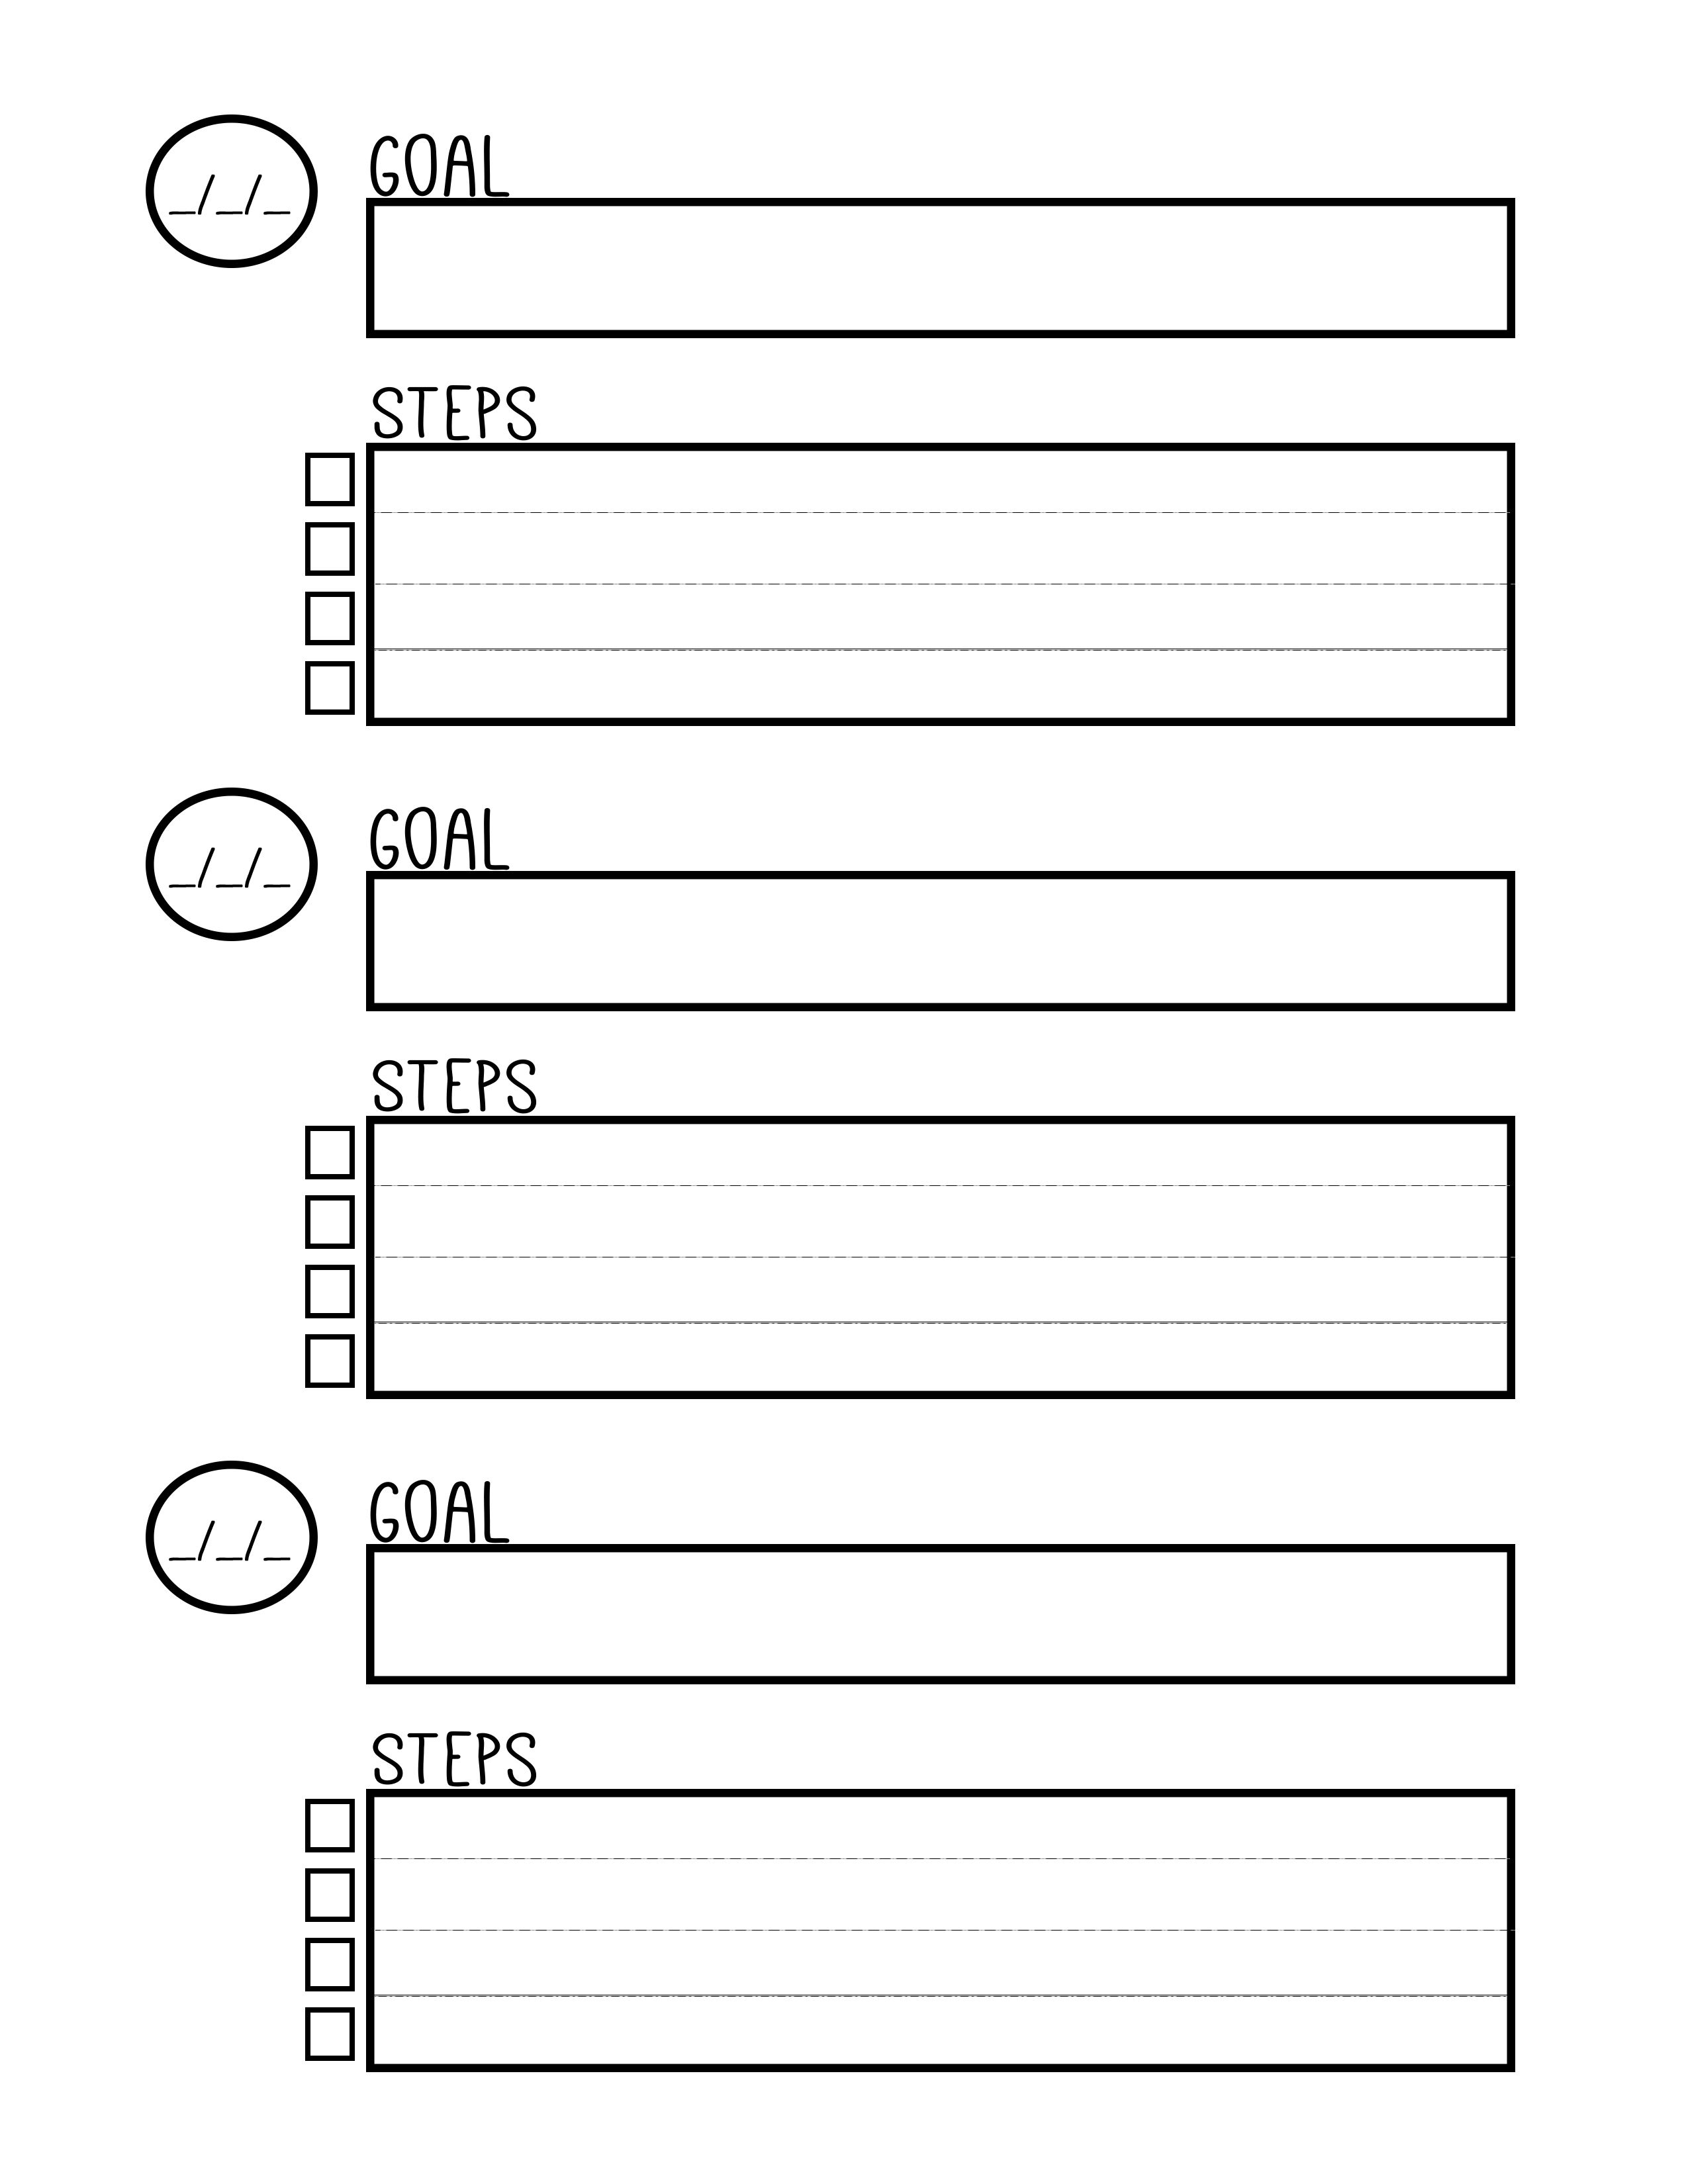 Goal Worksheet For Employees